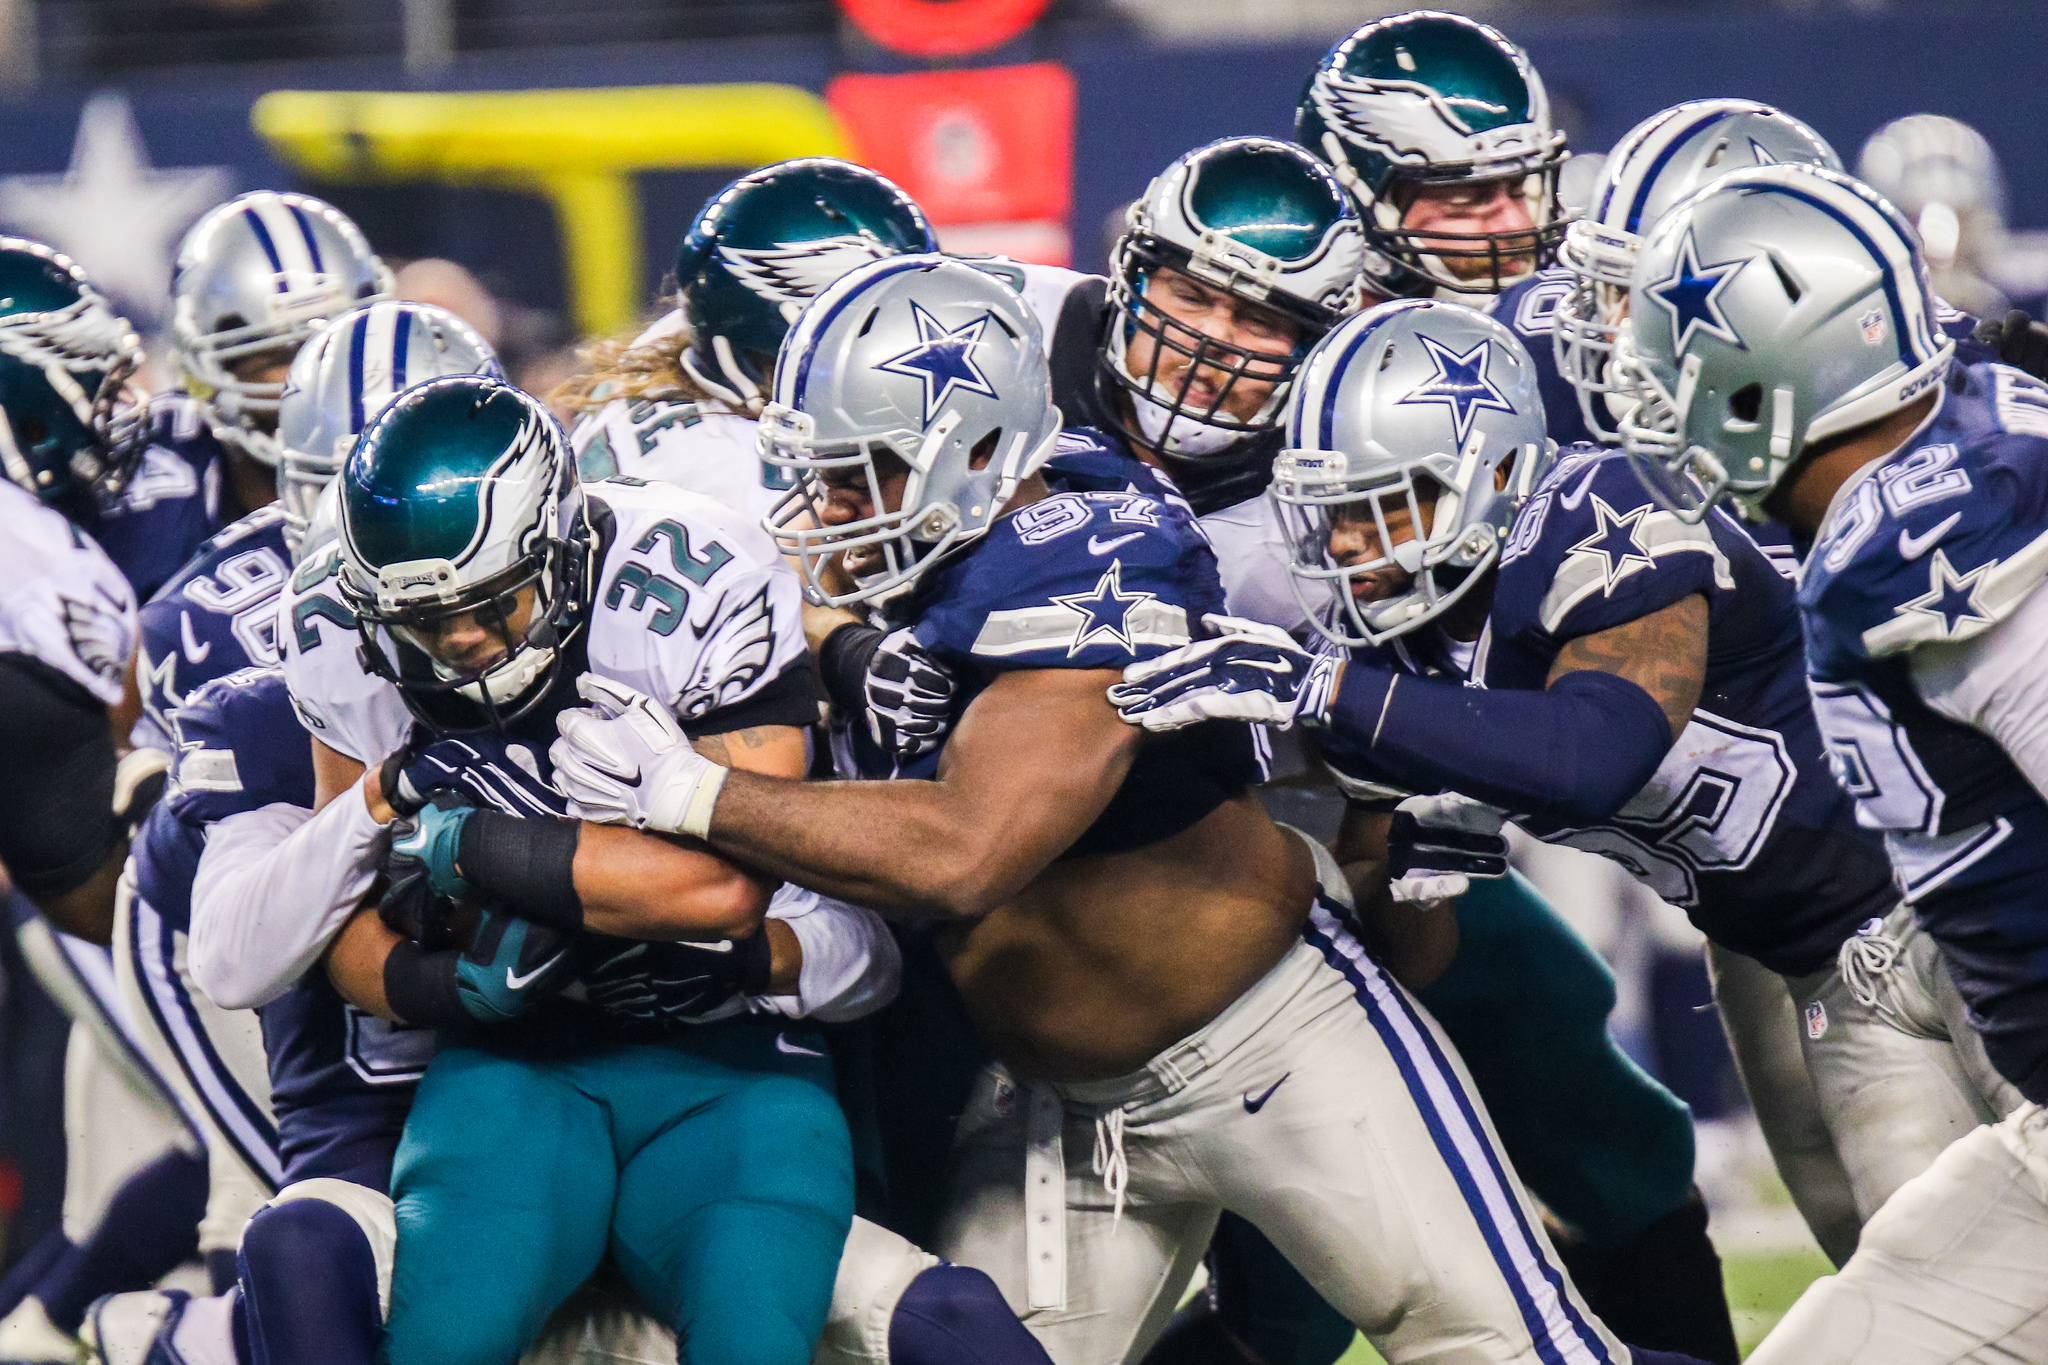 If the Cowboys defense steps up tonight then this game could be another classic. Photo Courtesy: Darryl Briggs